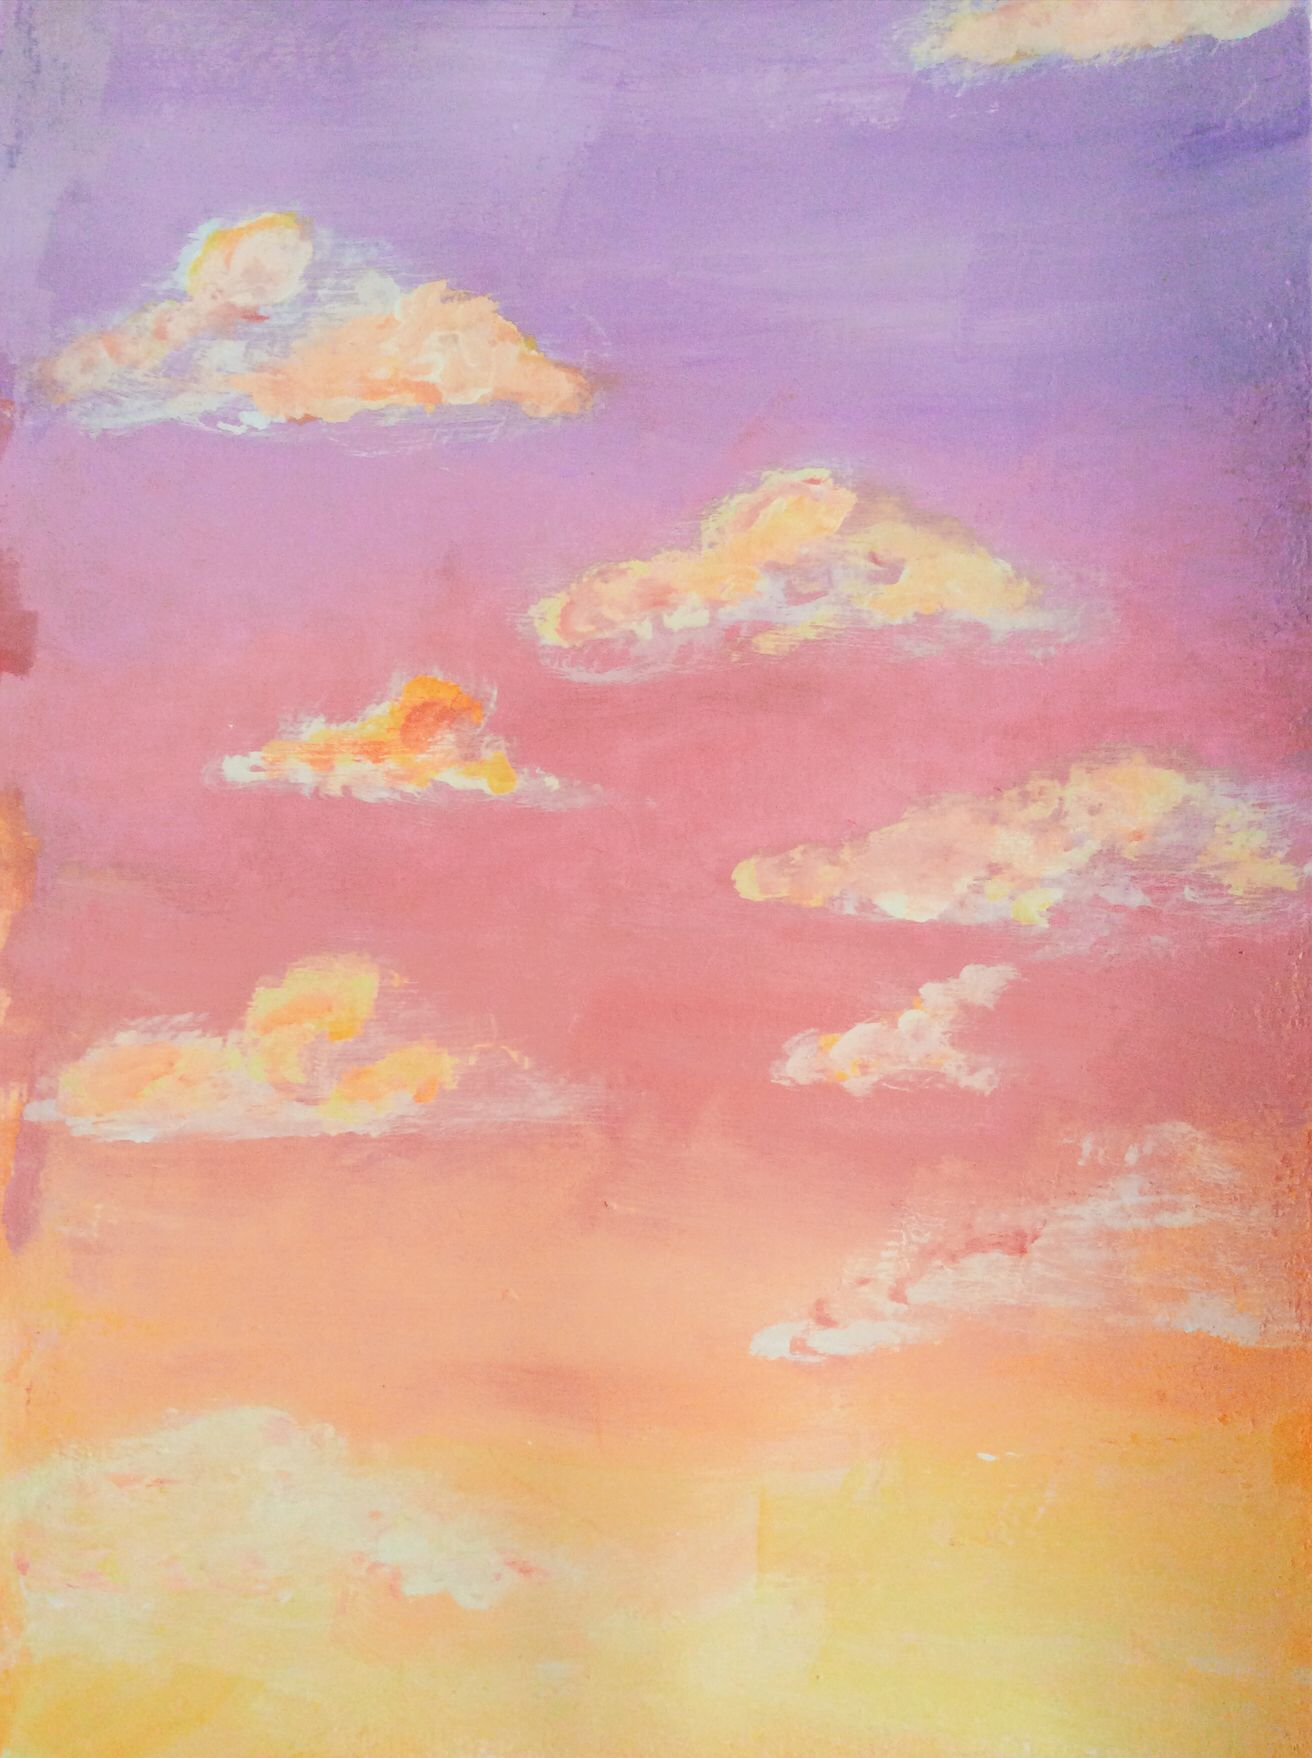 How To Make Aesthetic Clouds Painting